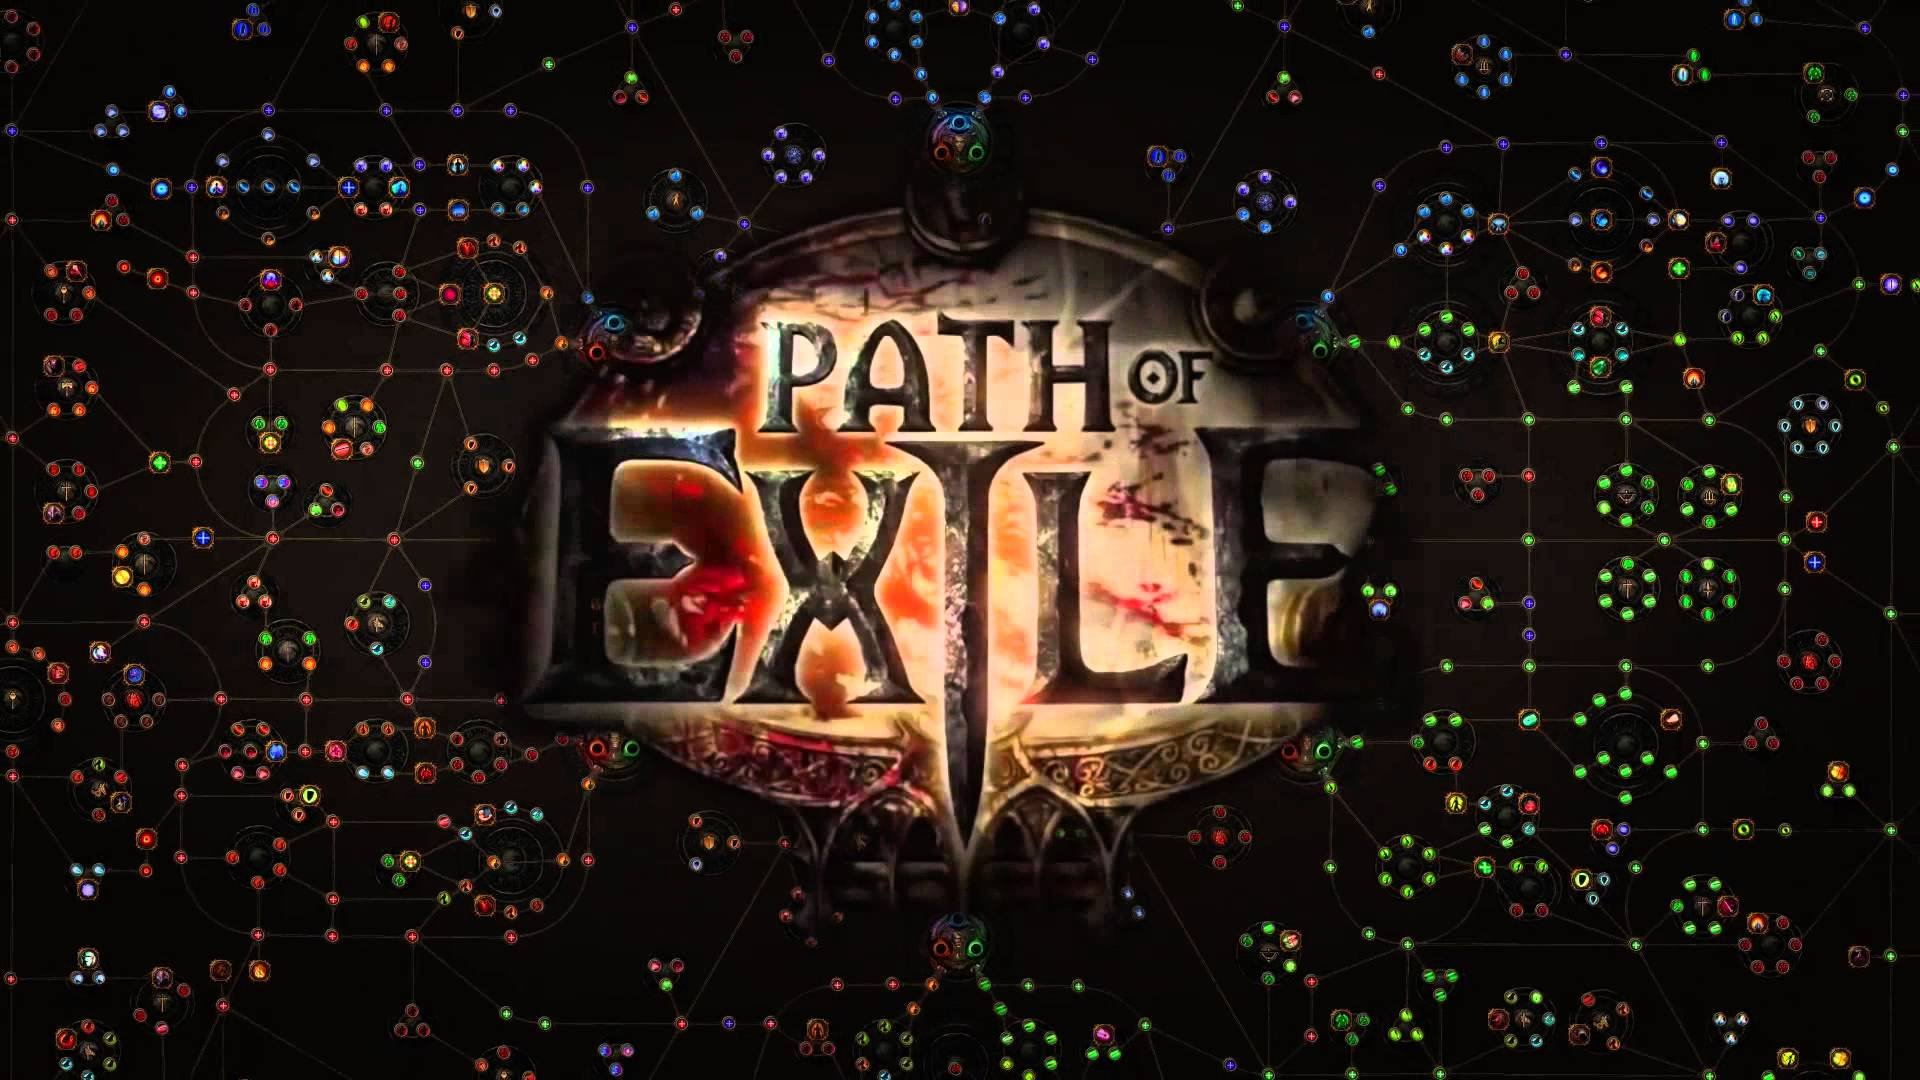 Path Of Exile Wallpaper: PATH OF EXILE Online Action Rpg Fantasy Fighting Wallpaper